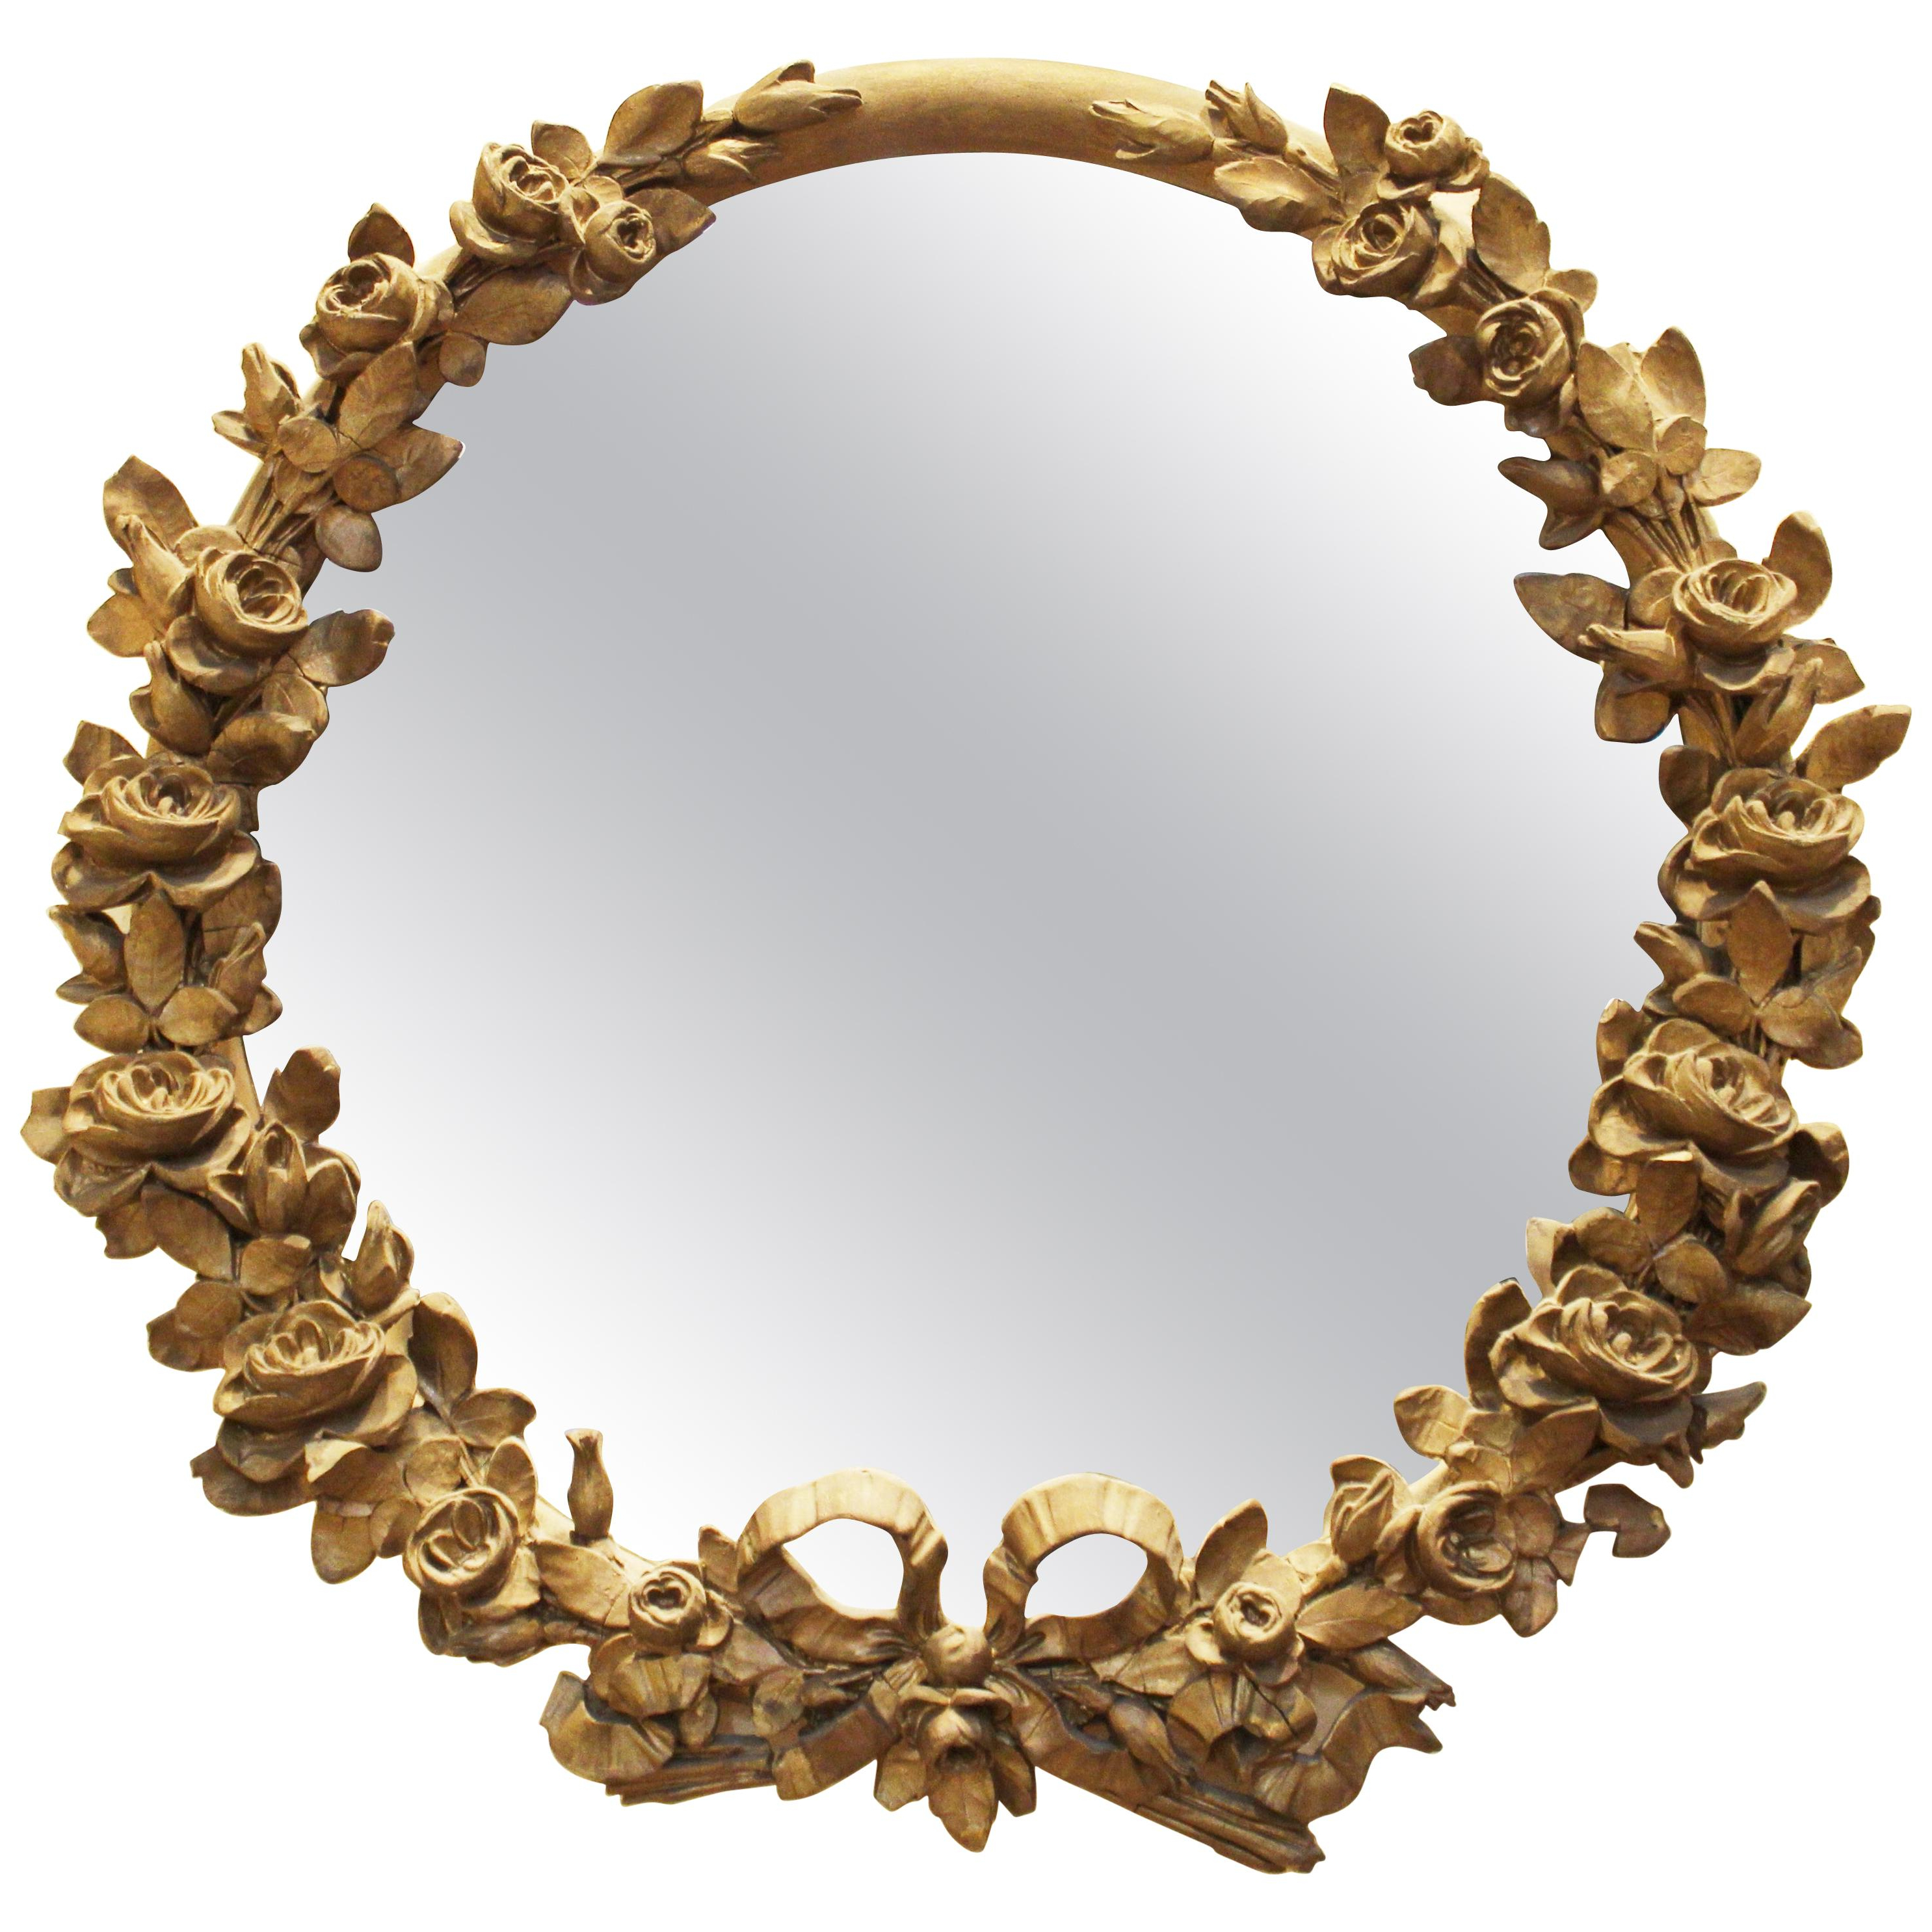 Current Expensive Wall Mirrors Regarding Antique And Vintage Mirrors – 16,608 For Sale At 1stdibs (View 9 of 20)